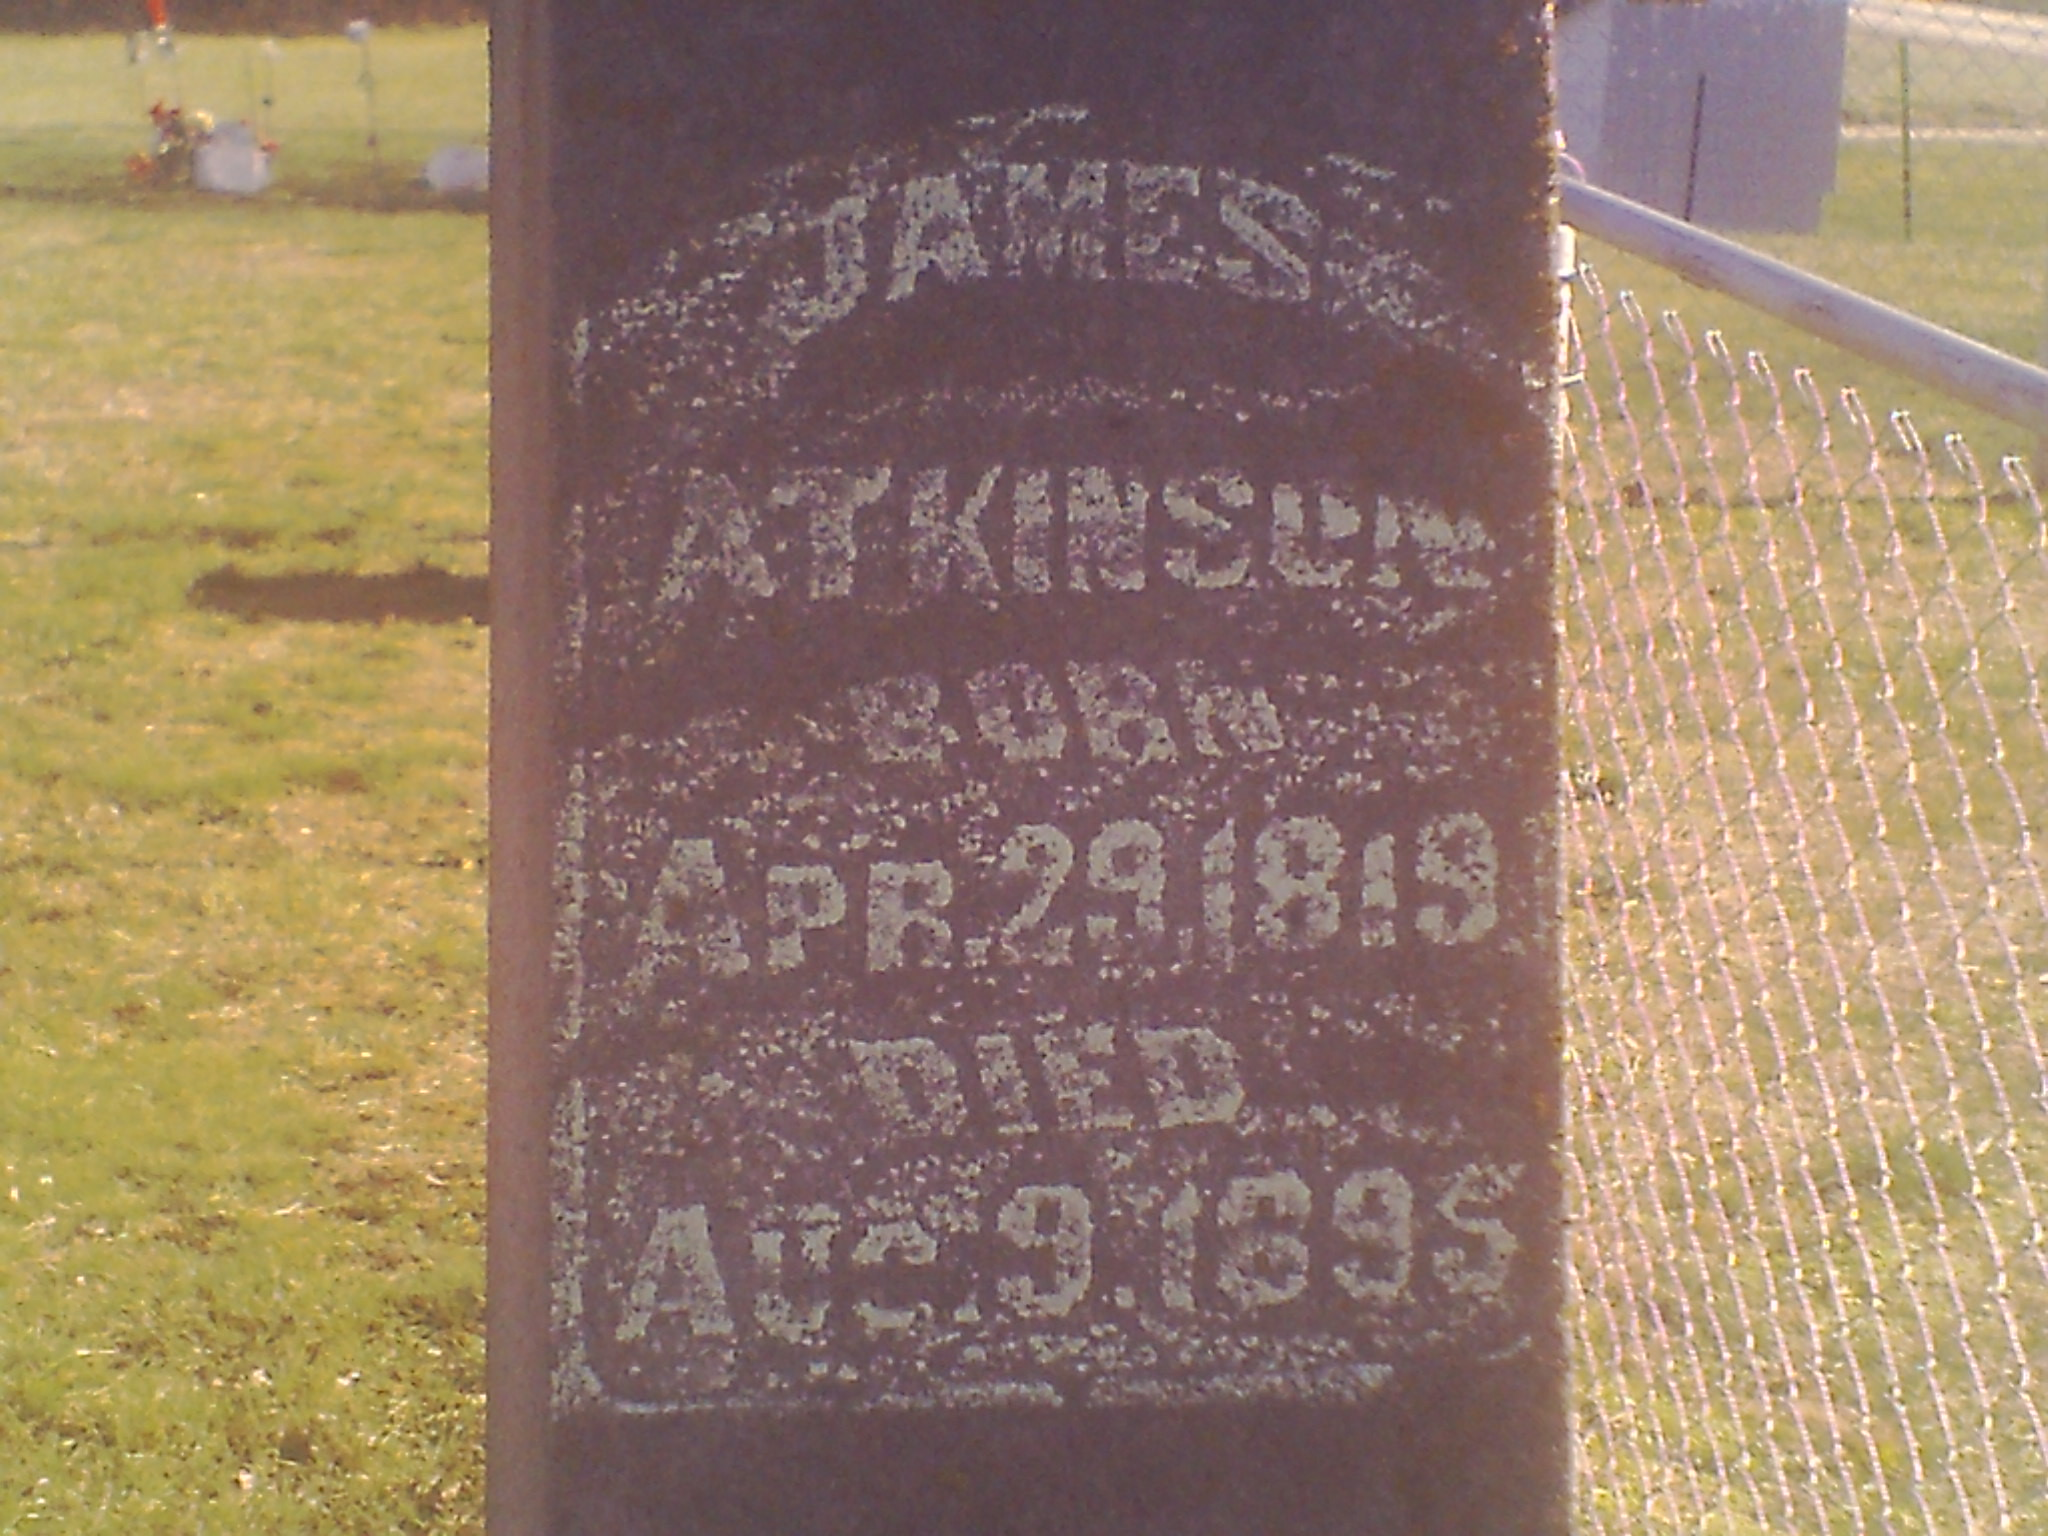 James G Atkinson